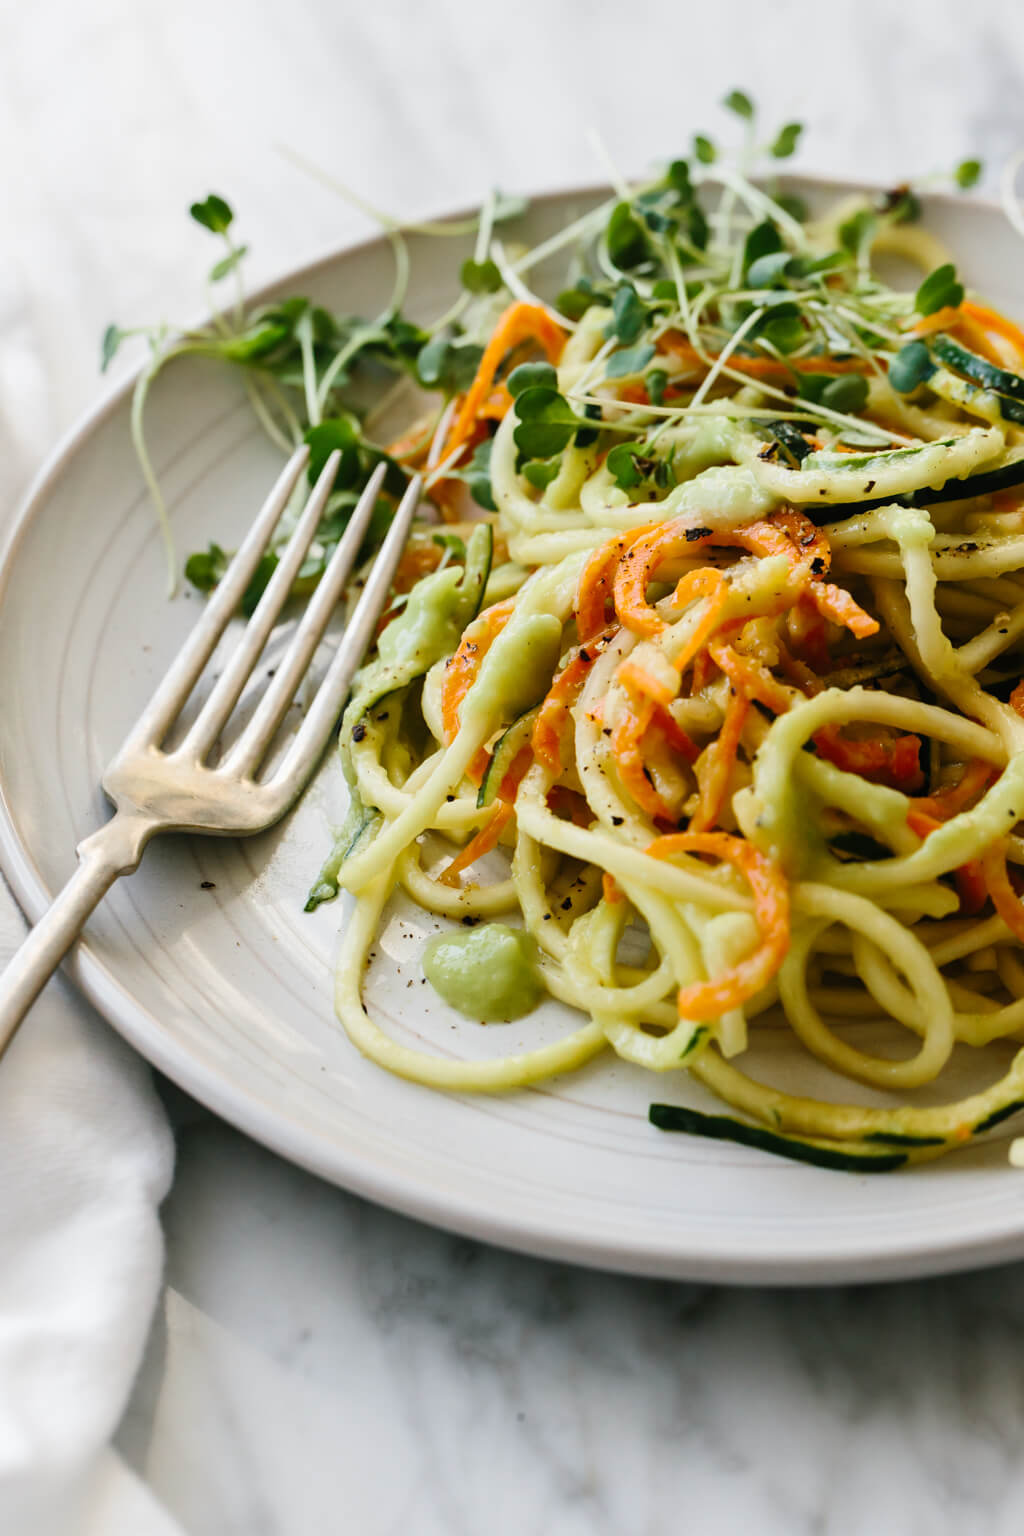 Carrot and zucchini pasta is mixed with a creamy, avocado cucumber sauce for a simple and delicious zucchini noodle recipe that's gluten-free, vegan, paleo and whole30.